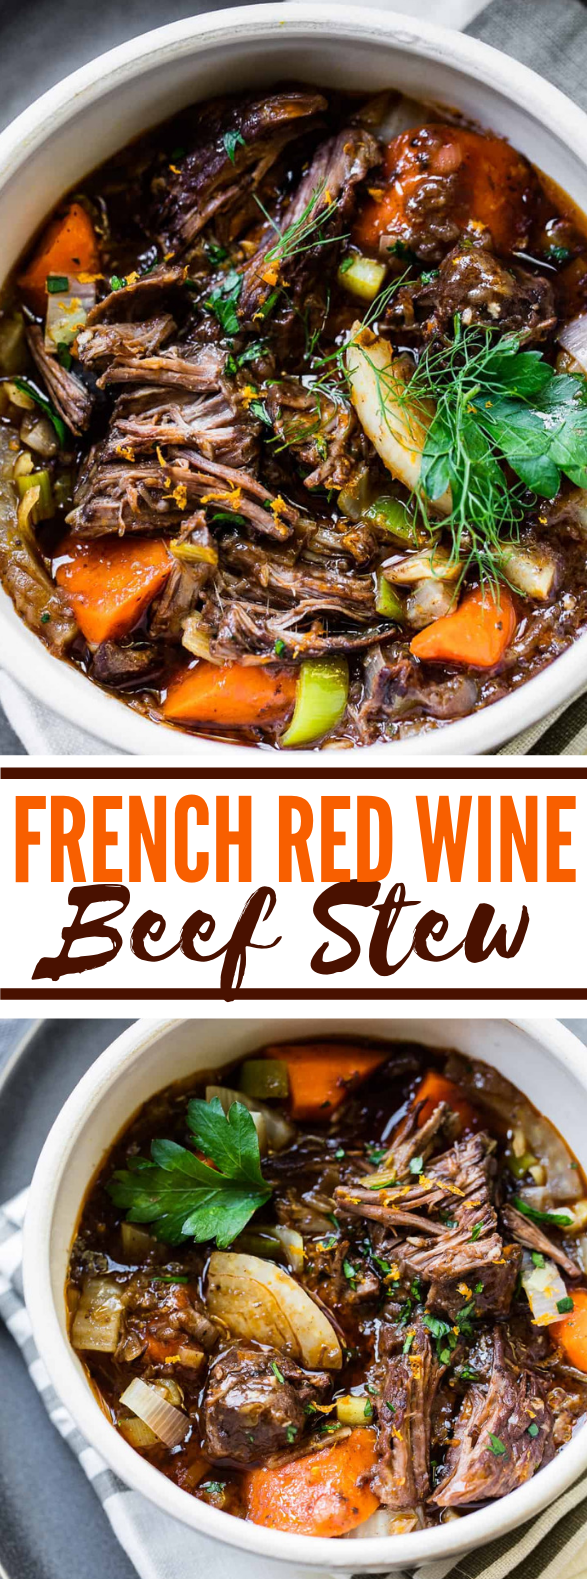 SLOW-COOKED RED WINE BEEF STEW #dinner #vegetables